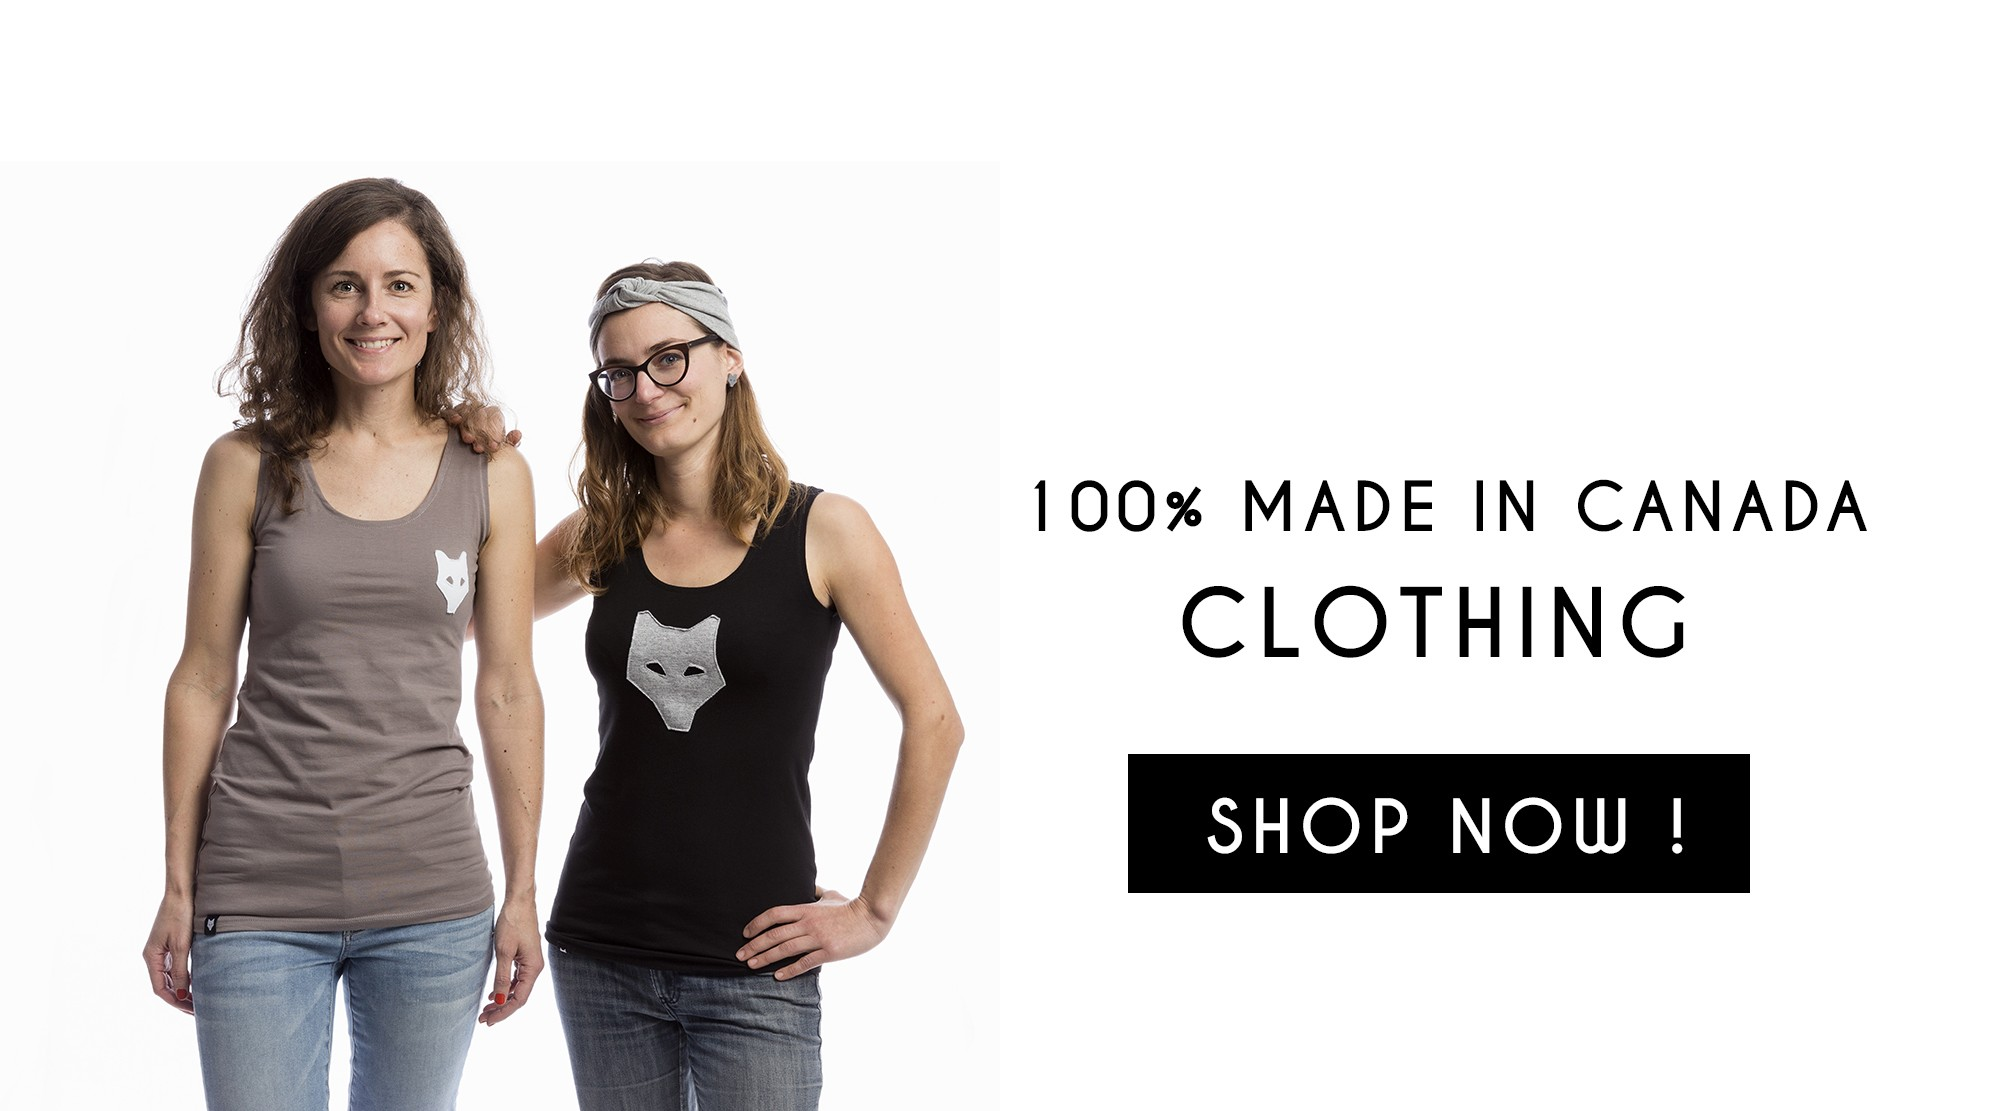 Chandaildeloup.com Clothing